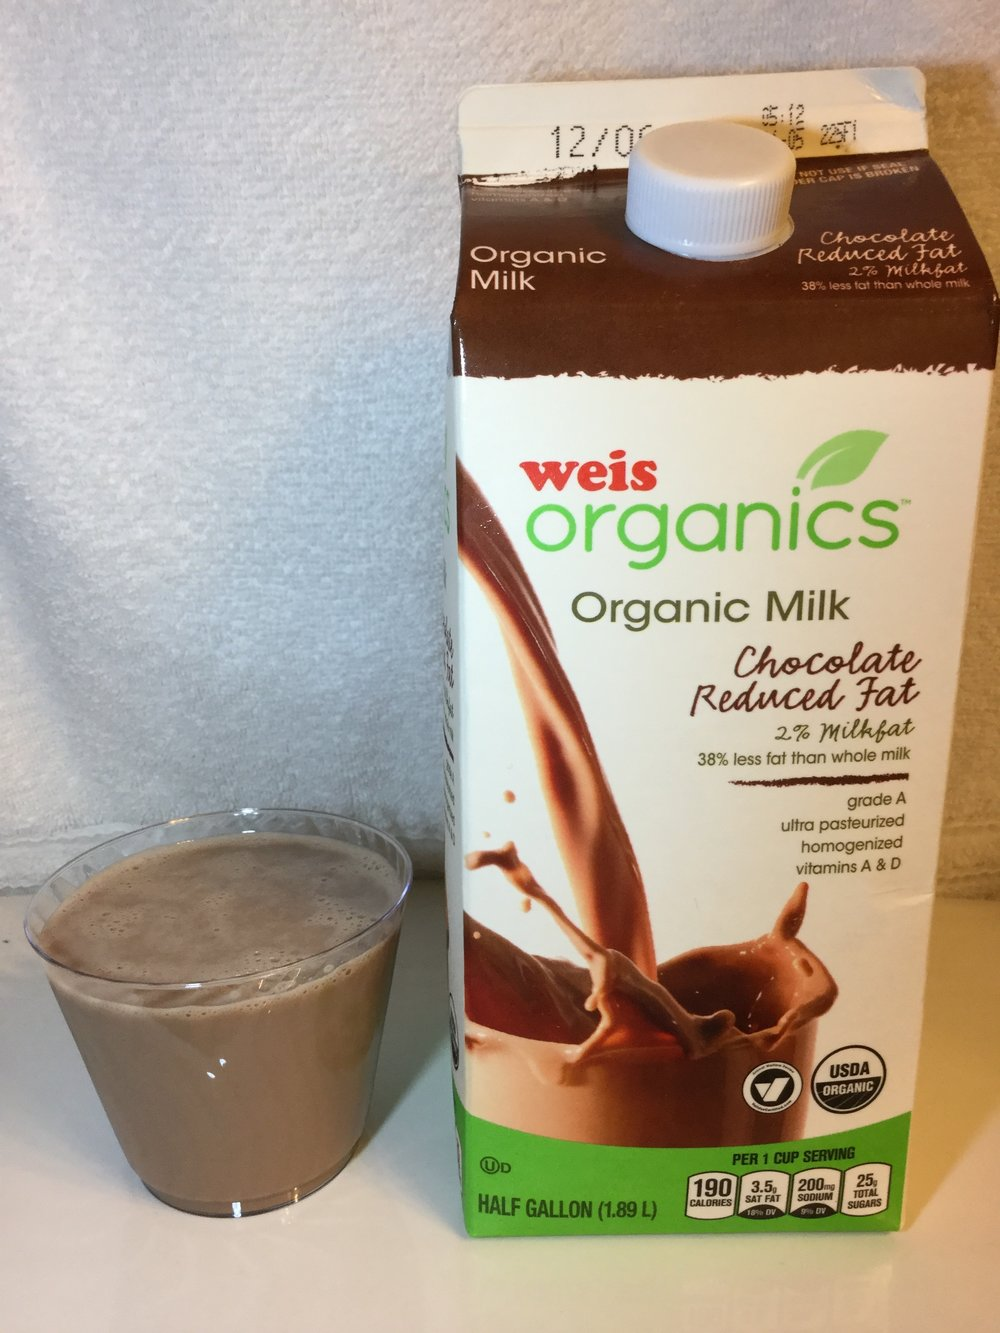 Weis Organics Reduced Fat Chocolate Milk Cup